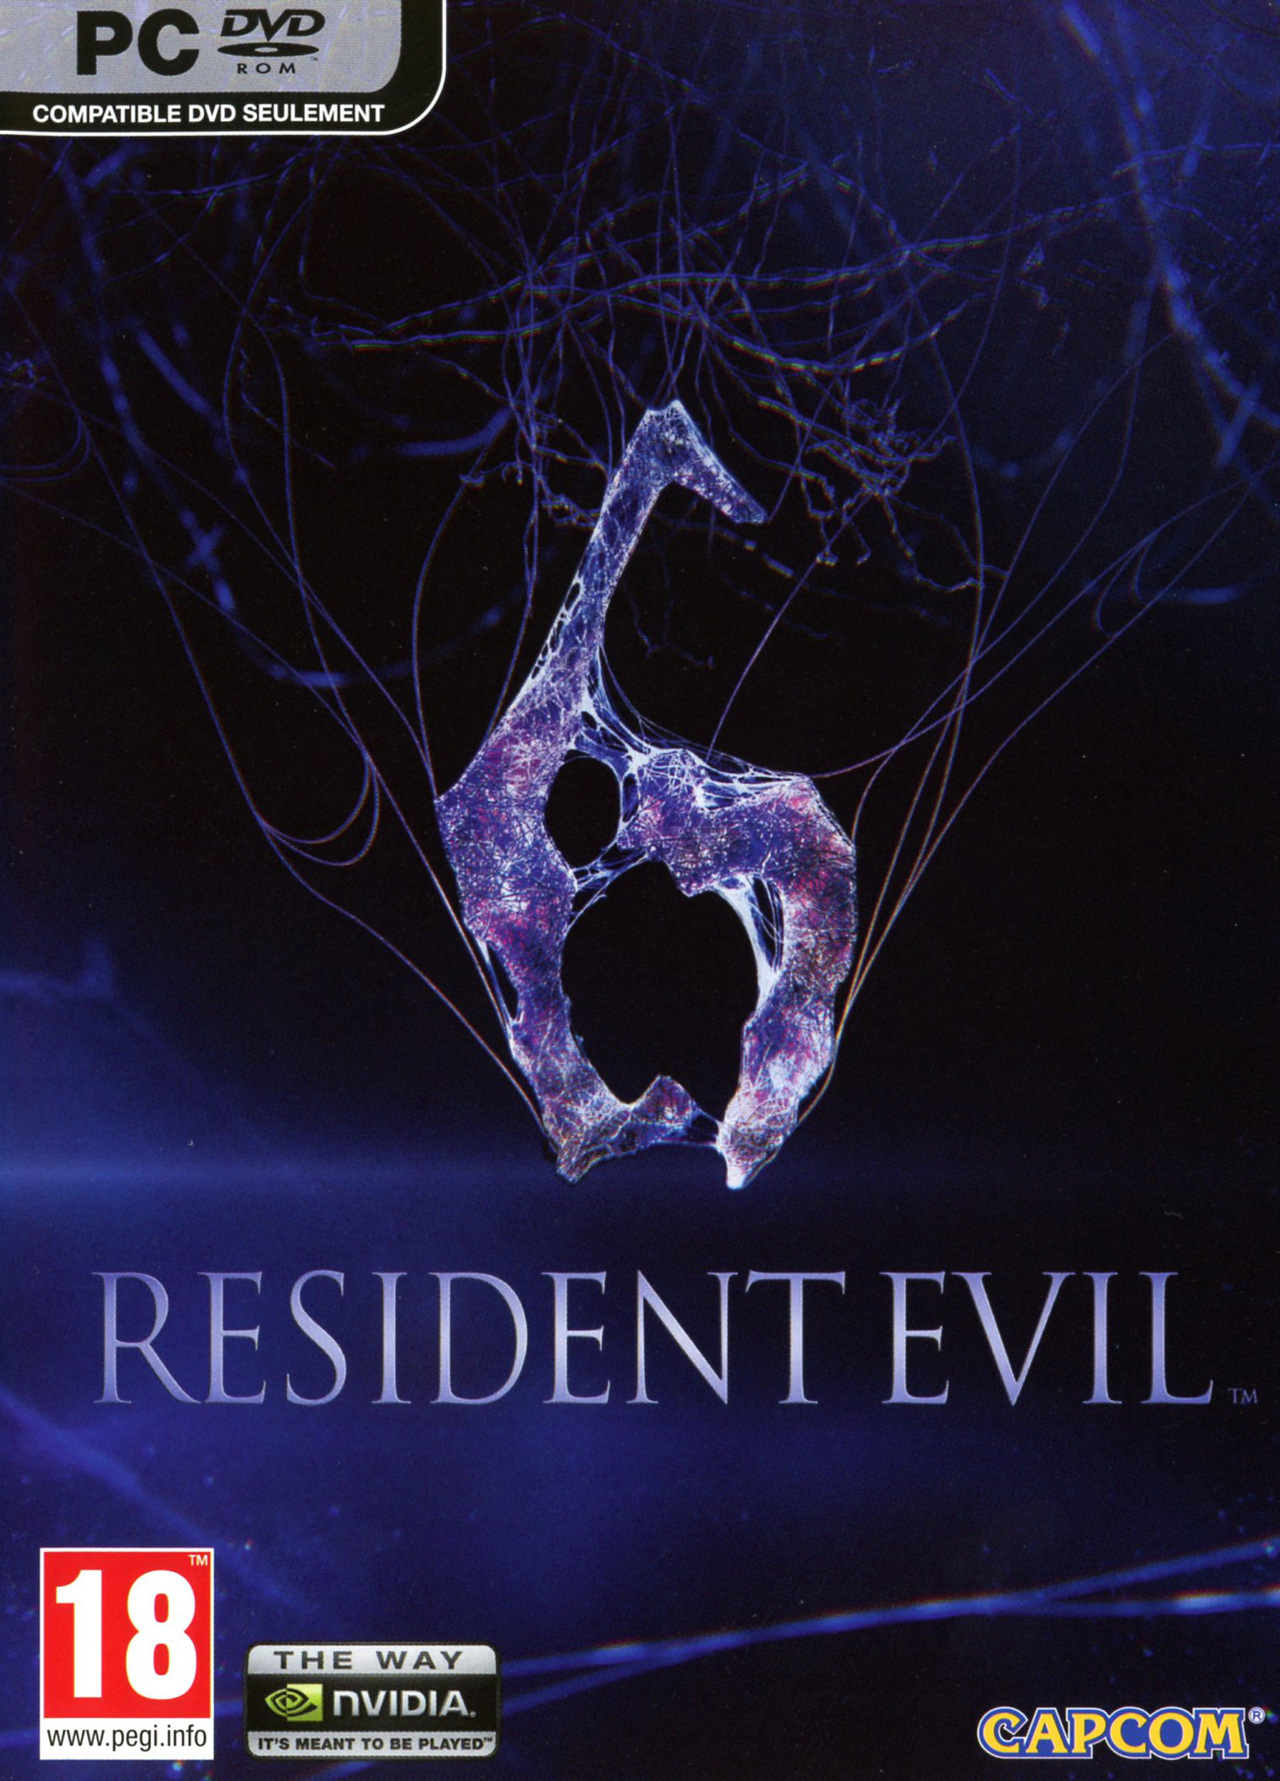 Resident Evil 6 2013 v1.6 [RELOADED] Crack Only